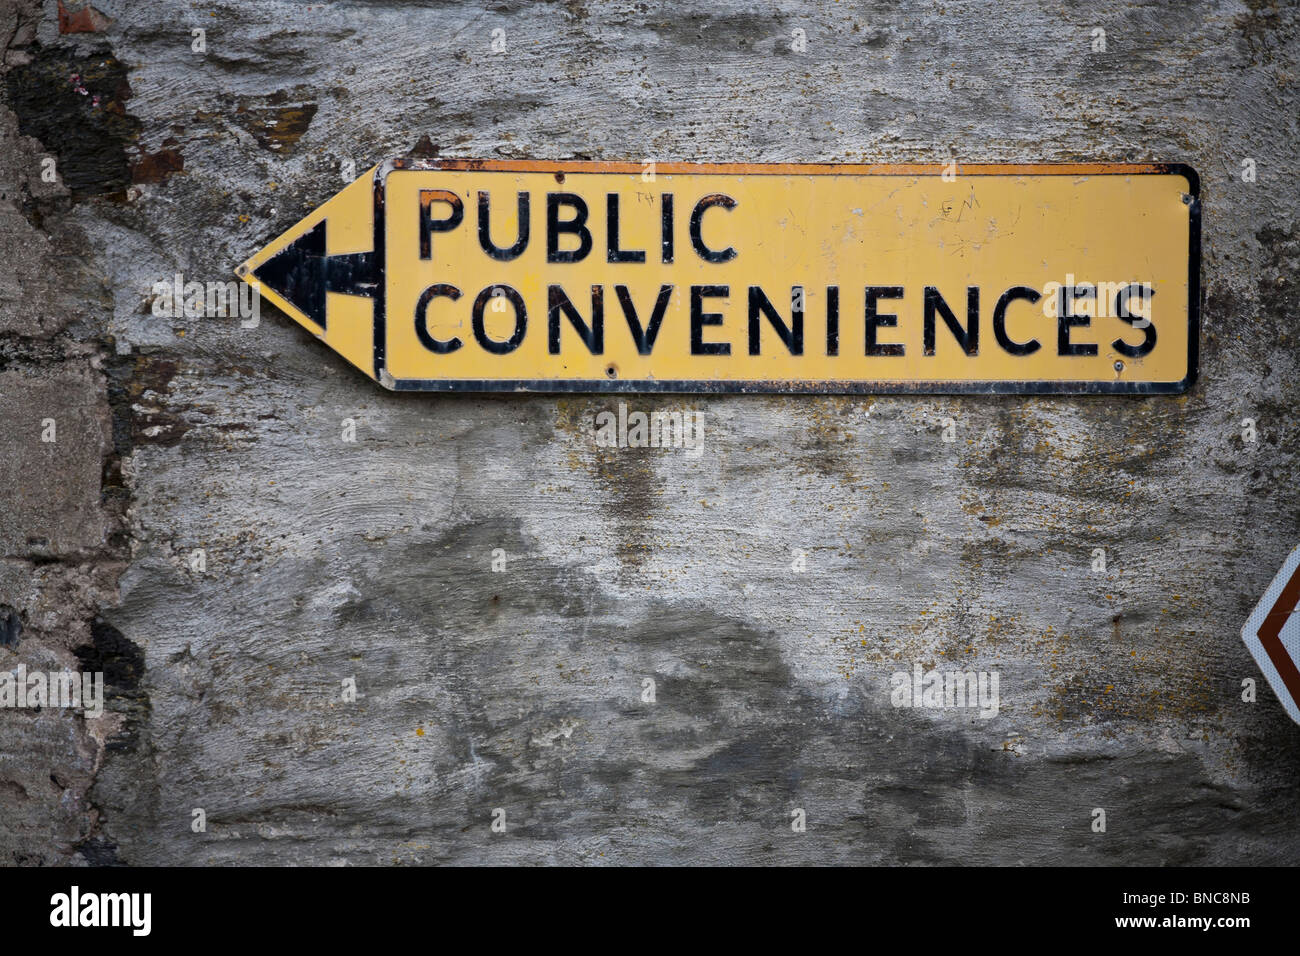 Public Conveniences Directional Sign. A yellow road sign directing people to the public toilets in Port Isaac. - Stock Image